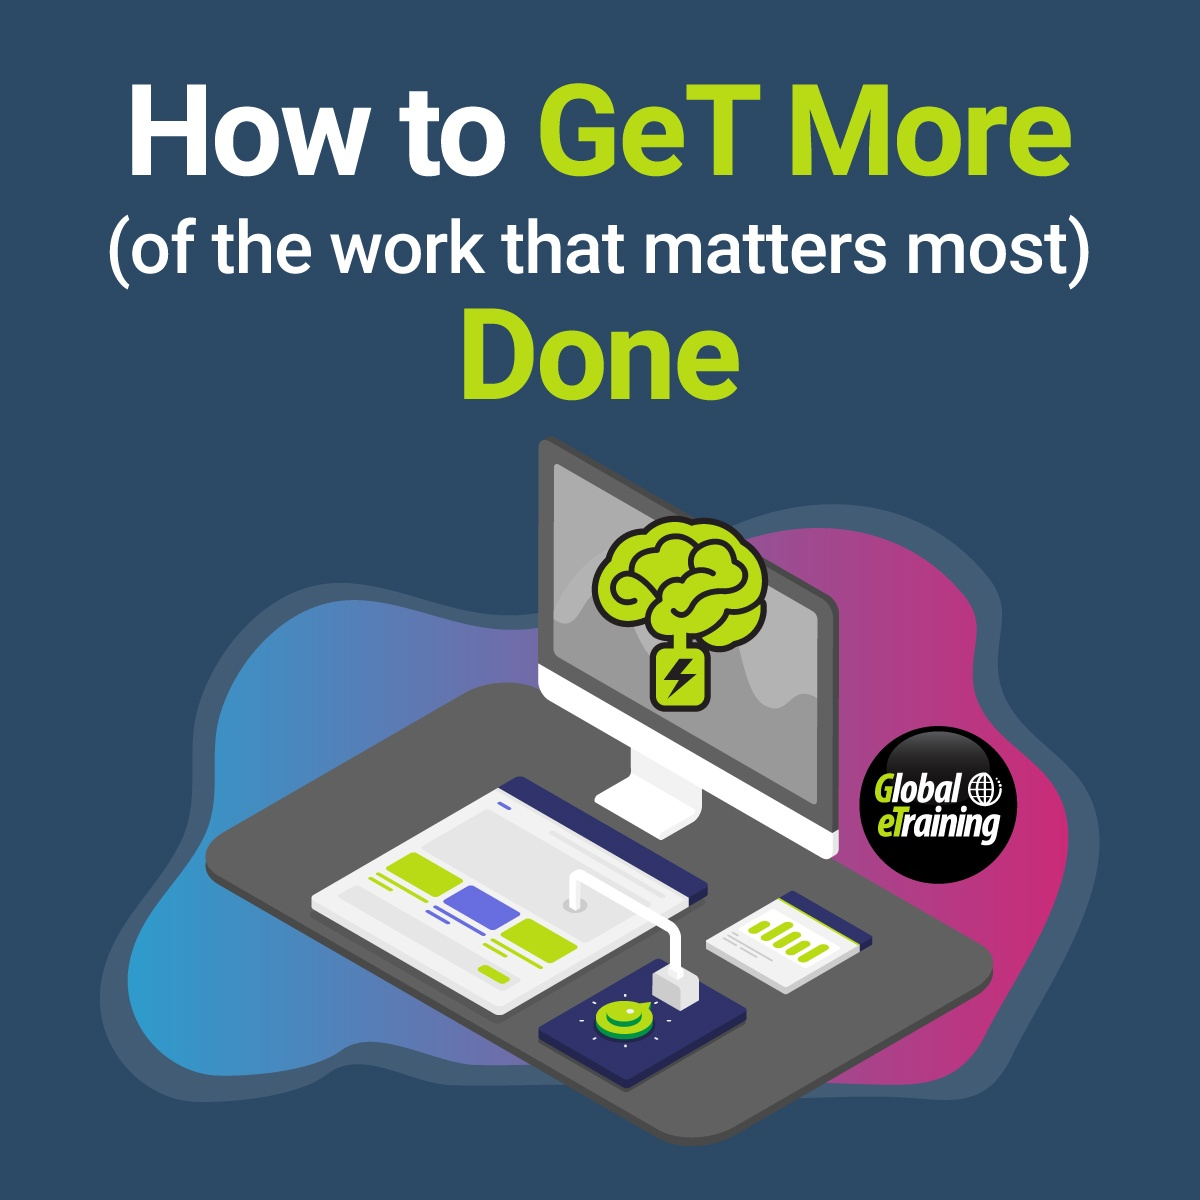 How to Get More (of the work that matters most) Done